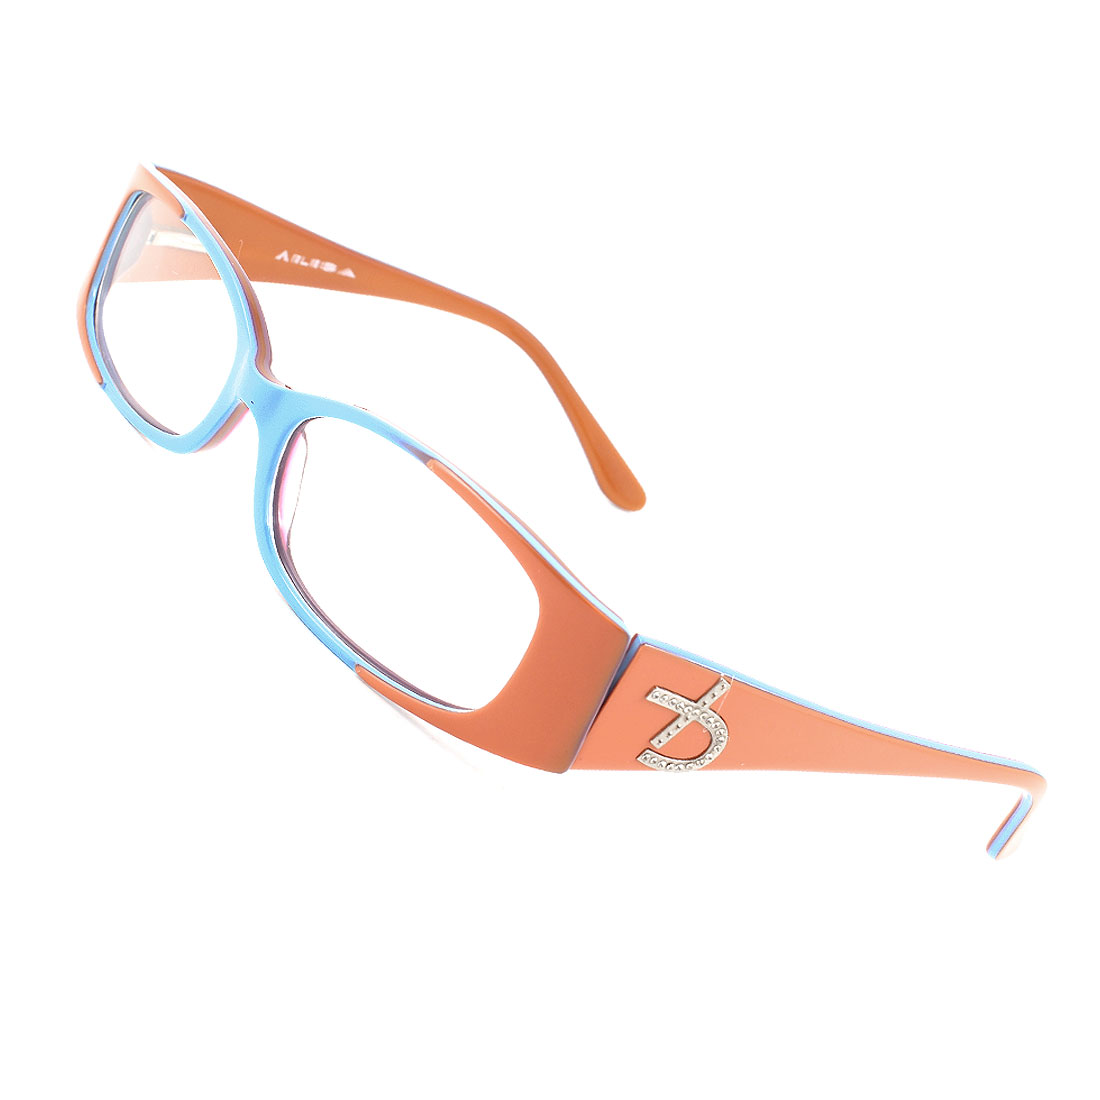 Plastic Single Bridge Clear Lens Plano Glasses Blue Orange for Ladies Woman